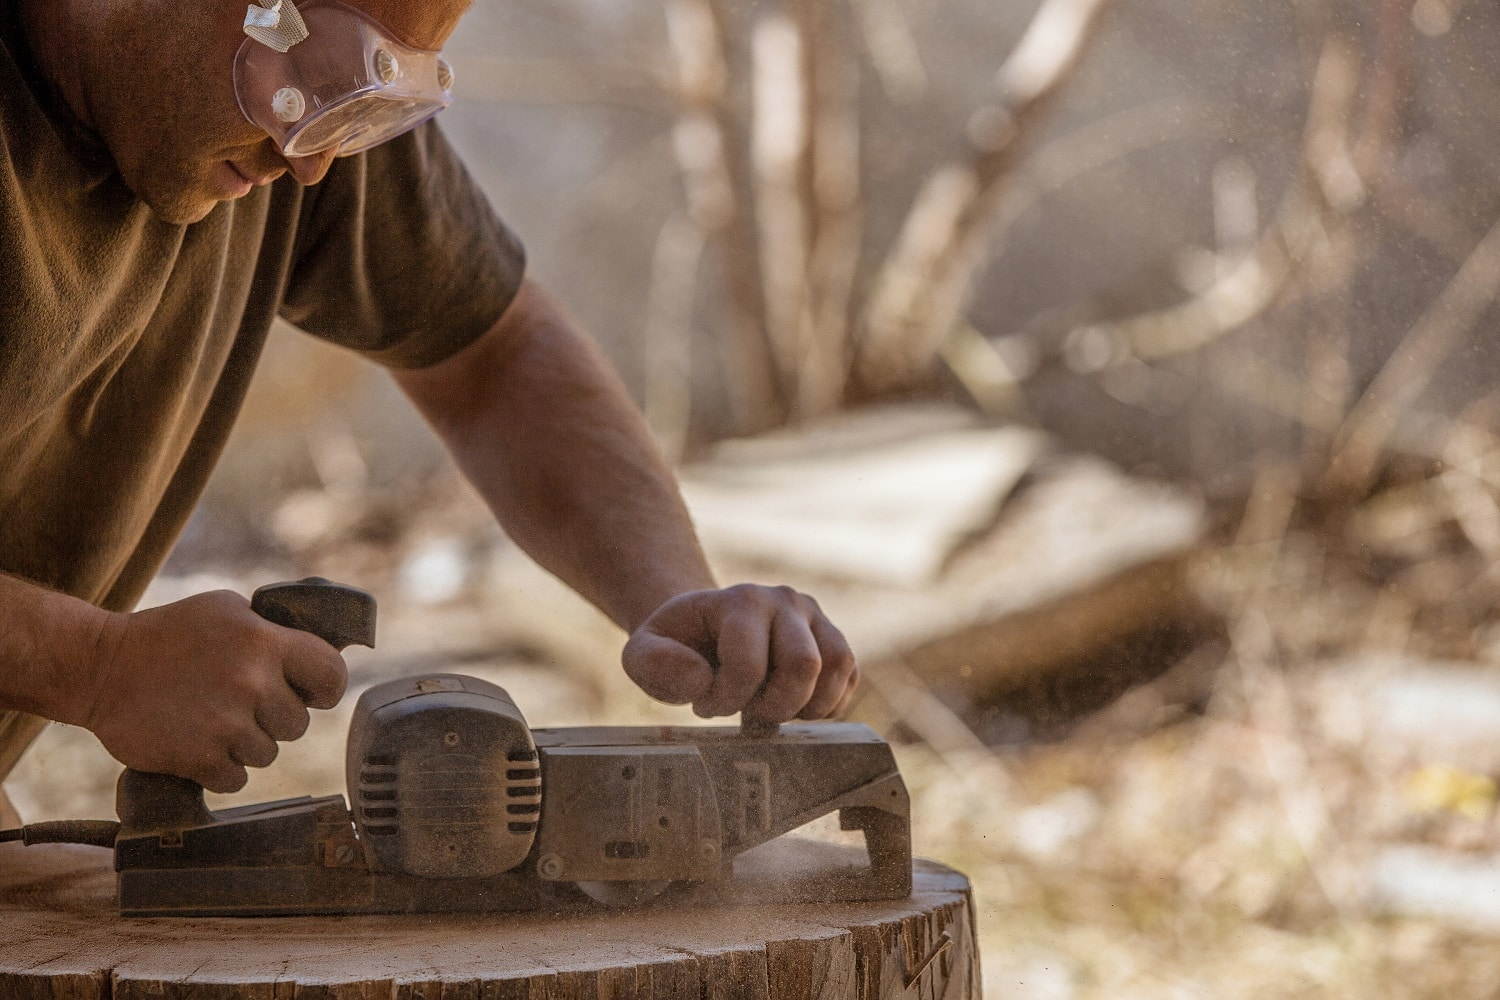 Carpenter working with electric planer on wooden stump in the open air, wearing goggles.